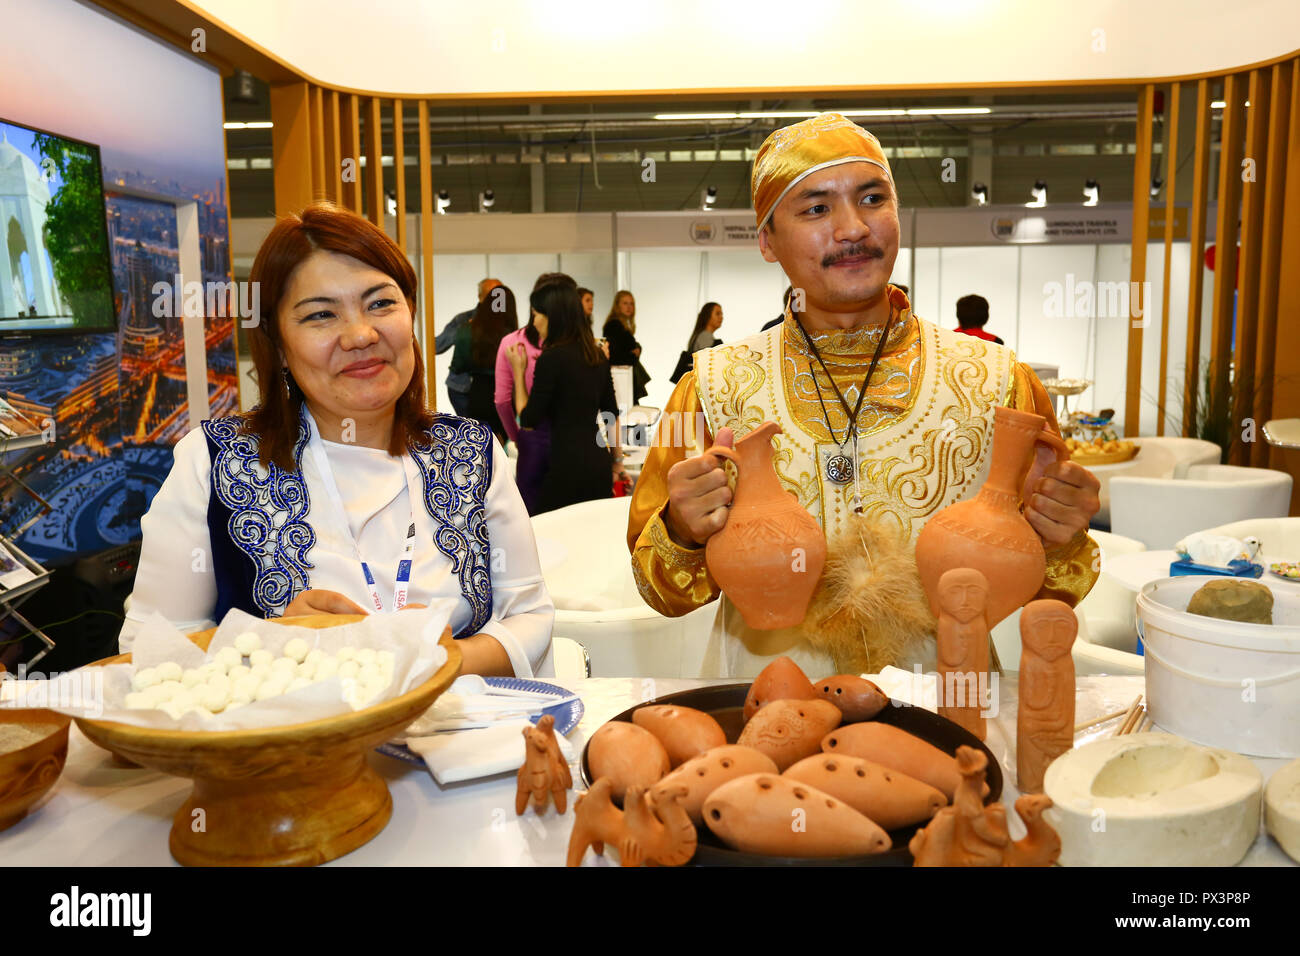 Nadarzyn, Poland, 19th October 2018: Kazakhstan stand at World Travel Show, PTAK Expo center.  ©Jake Ratz/Alamy Live News - Stock Image